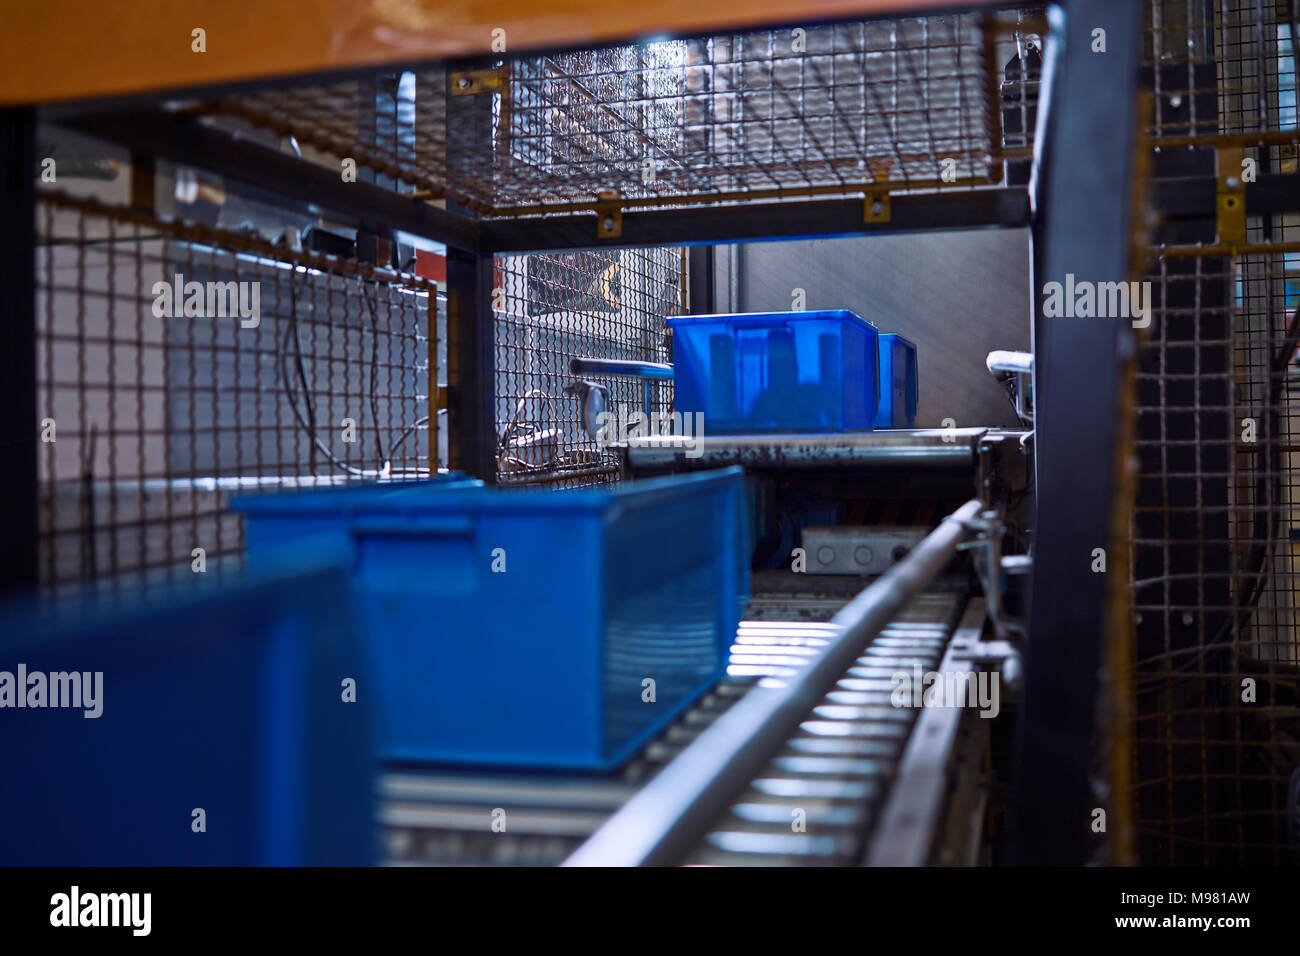 Blue boxes on conveyor belt - Stock Image